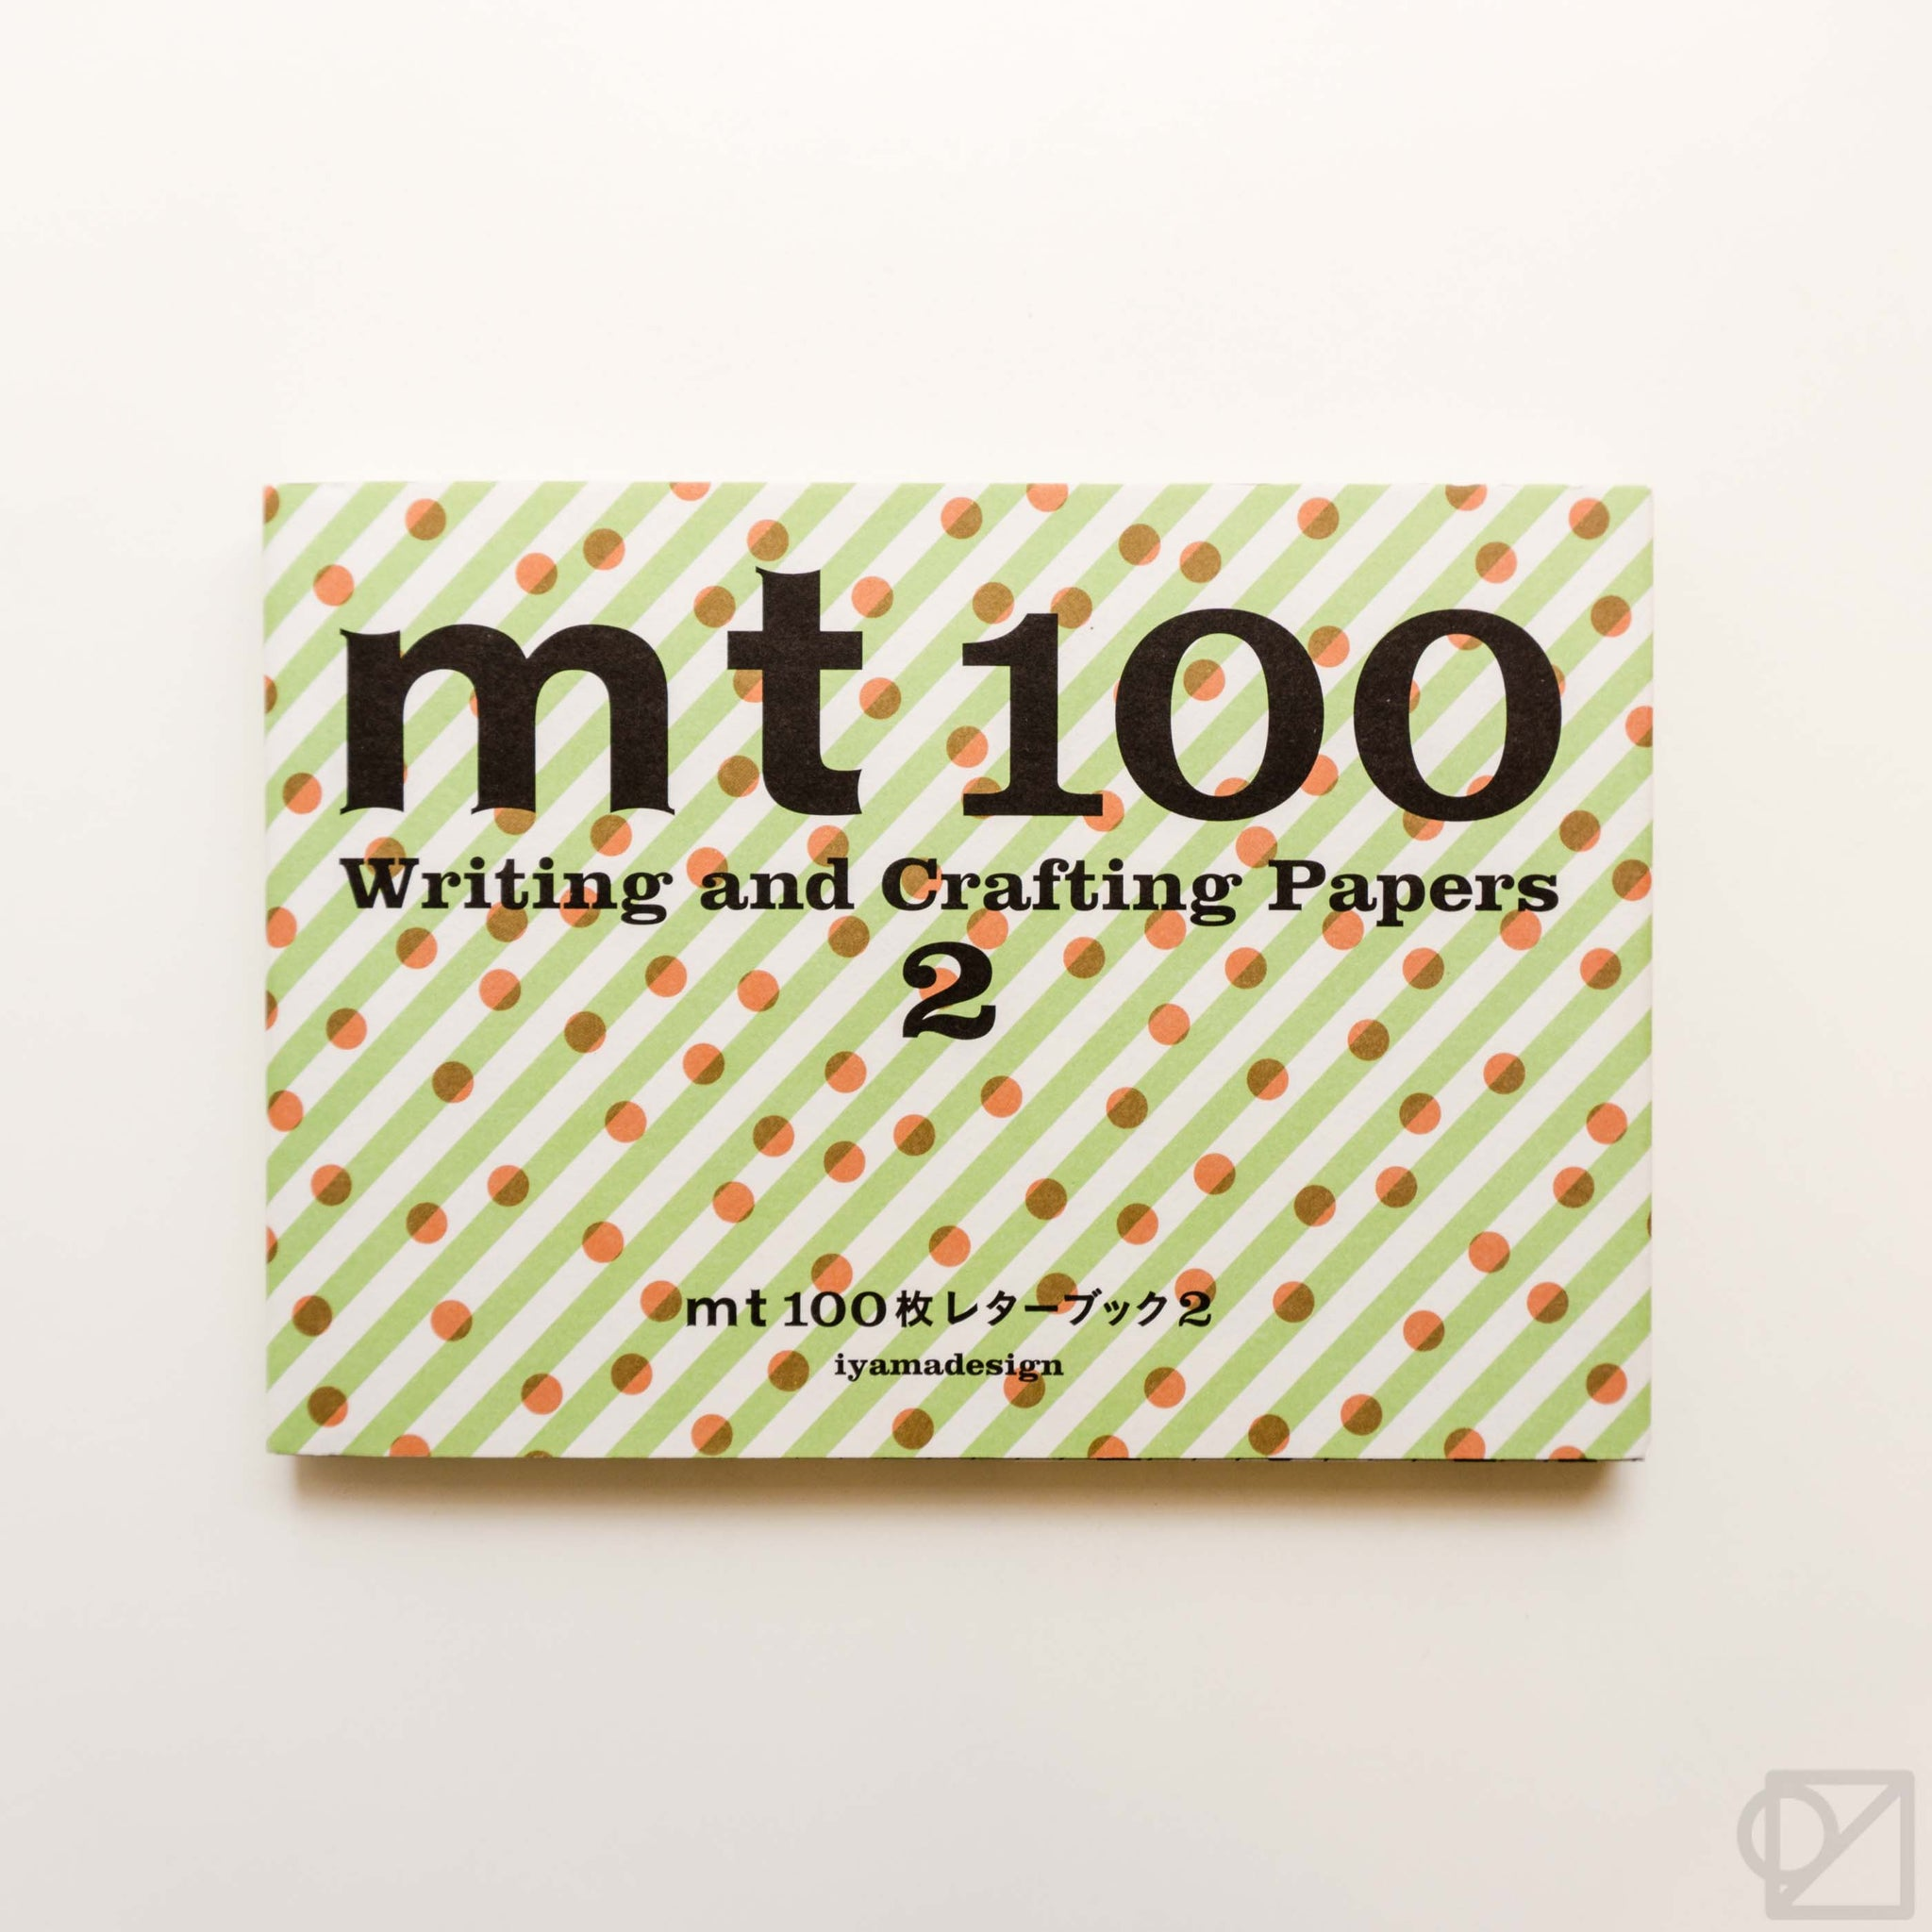 mt100: 100 Writing & Crafting Papers